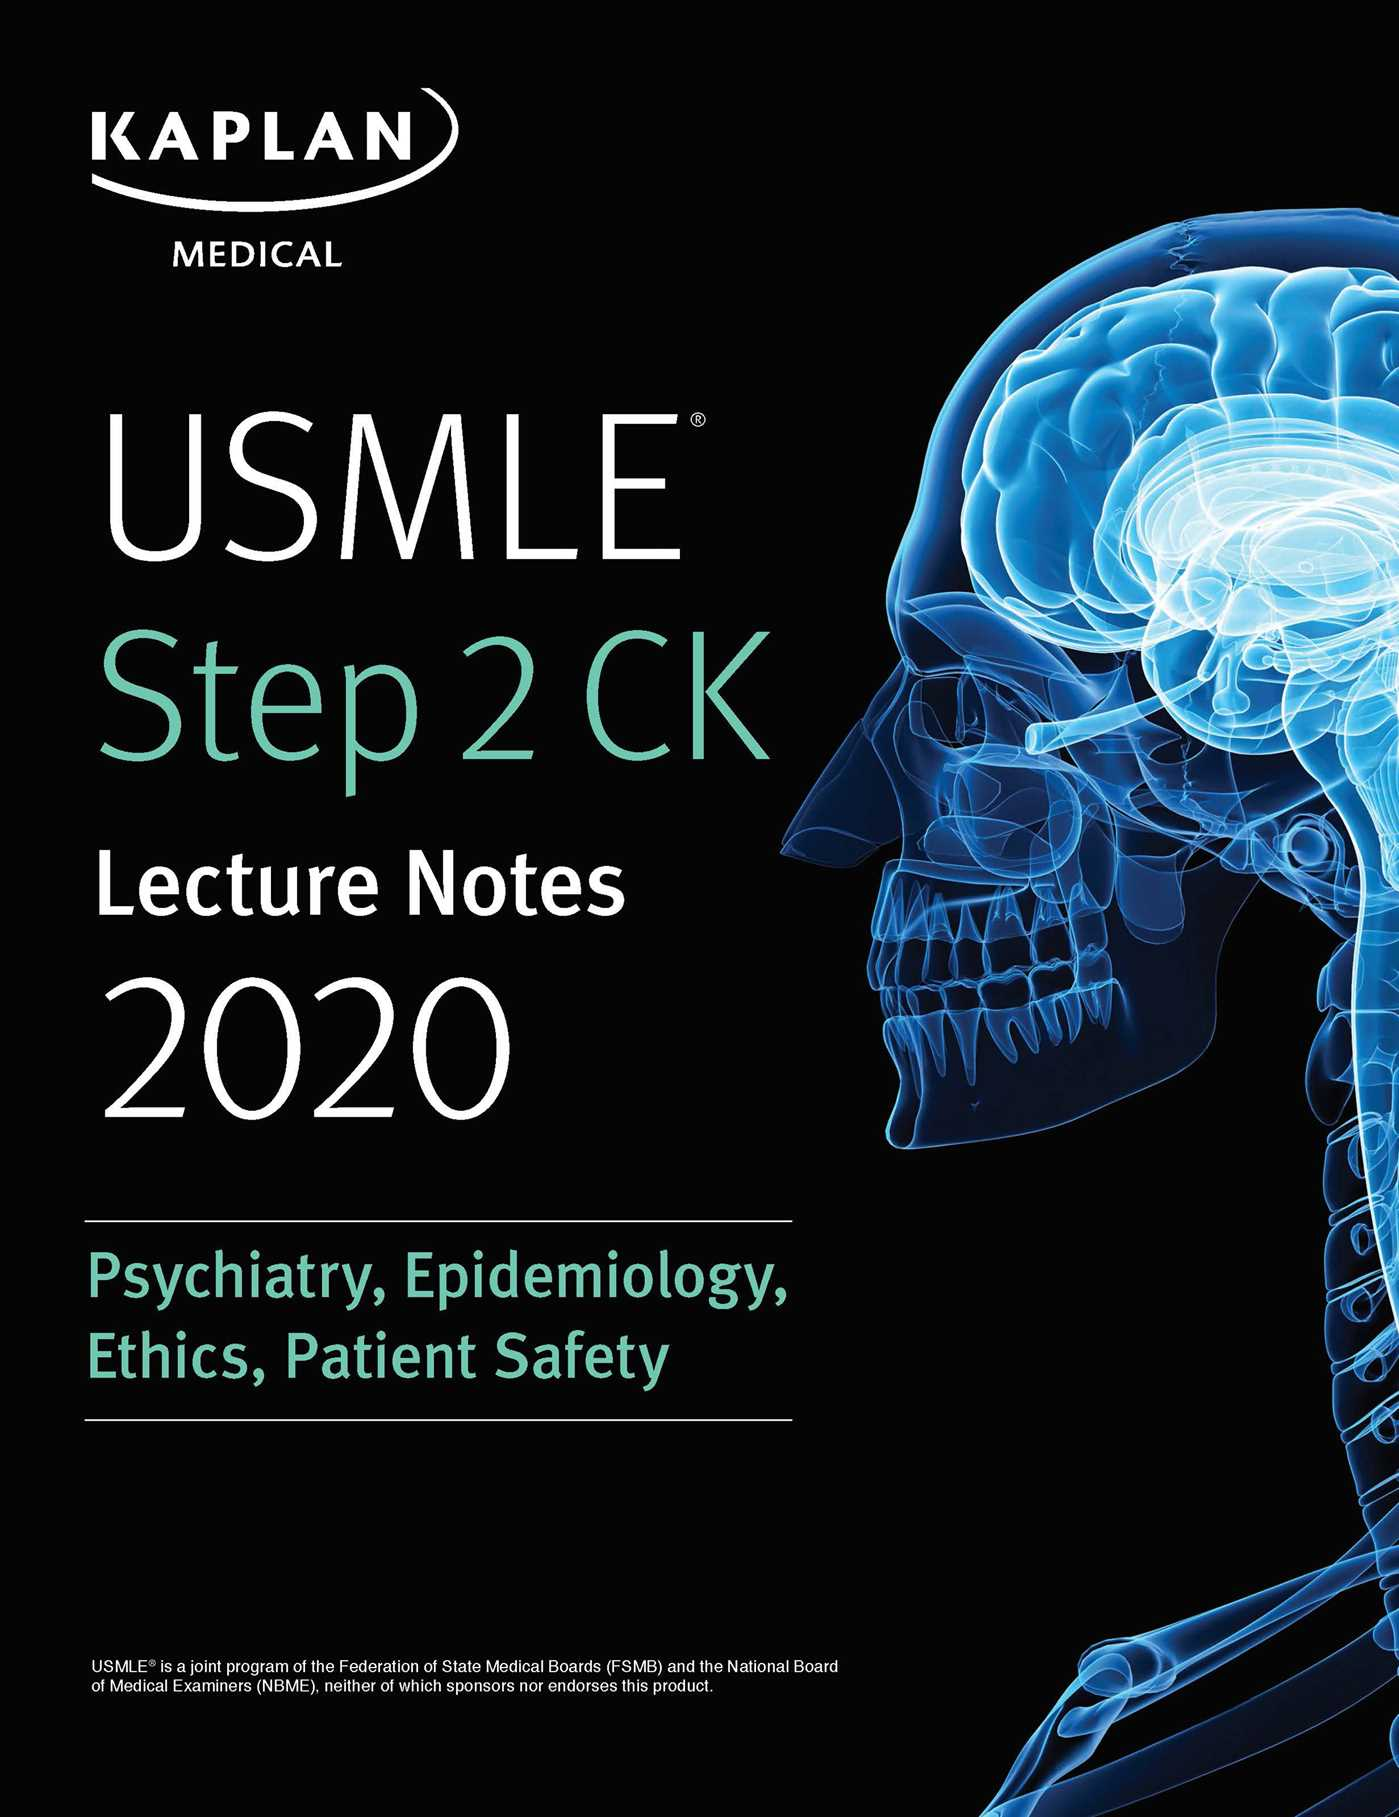 USMLE Step 2 CK Lecture Notes 2020: Psychiatry, Epidemiology